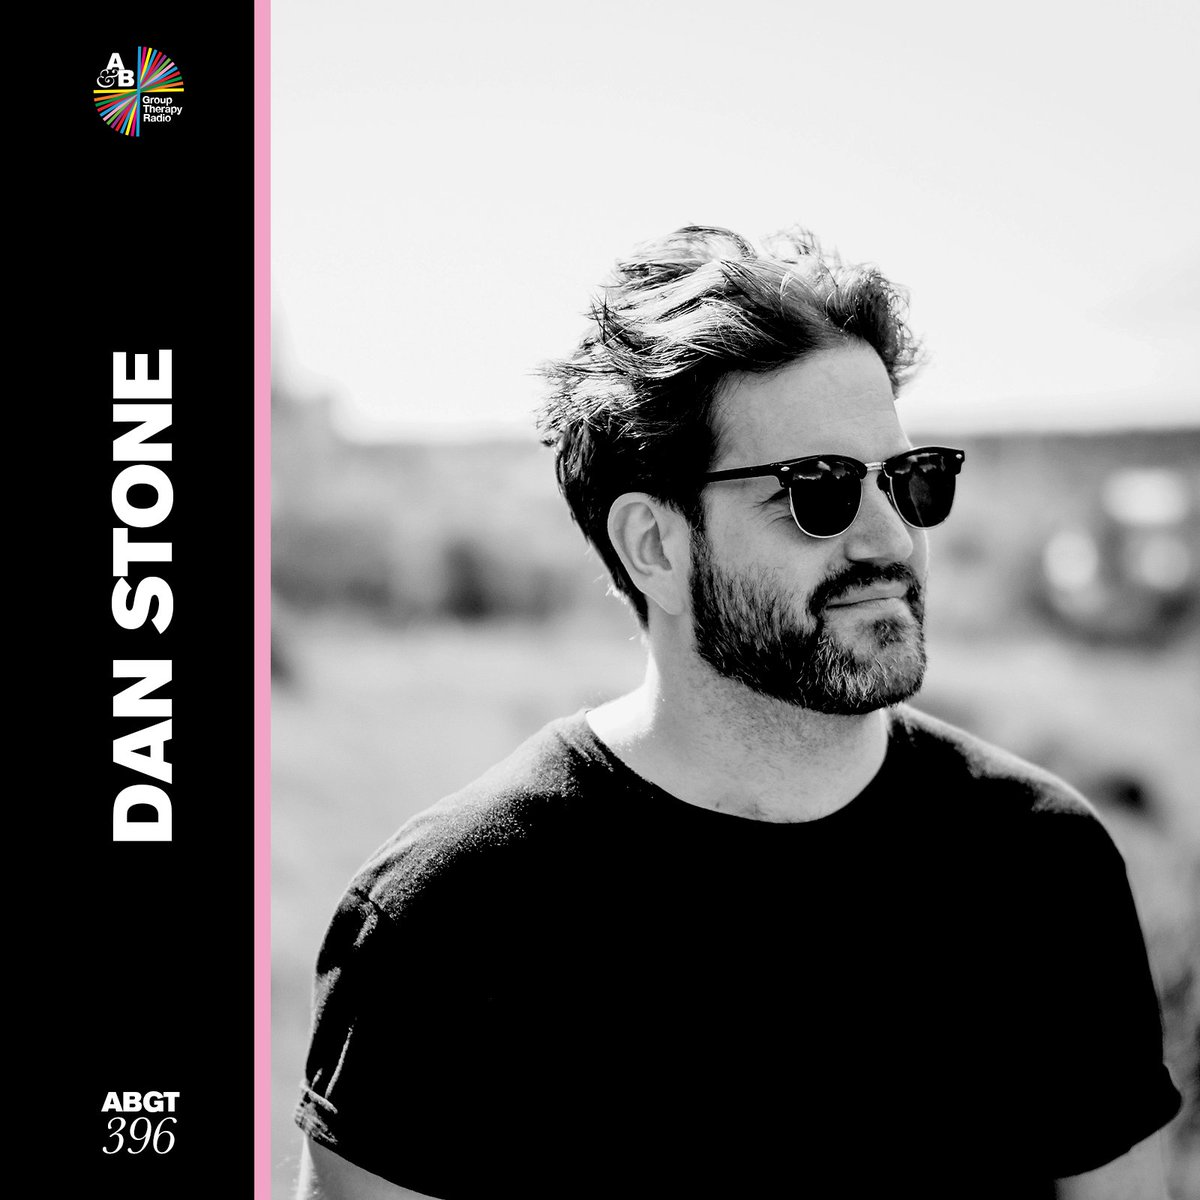 This week on Group Therapy Radio, @danstonemusic is the booth with an ID-packed Guest Mix! 🔥  Tune in on Friday from 7pm BST on @aboveandbeyond's YouTube and Twitch channels https://t.co/OoU1HsHP5x